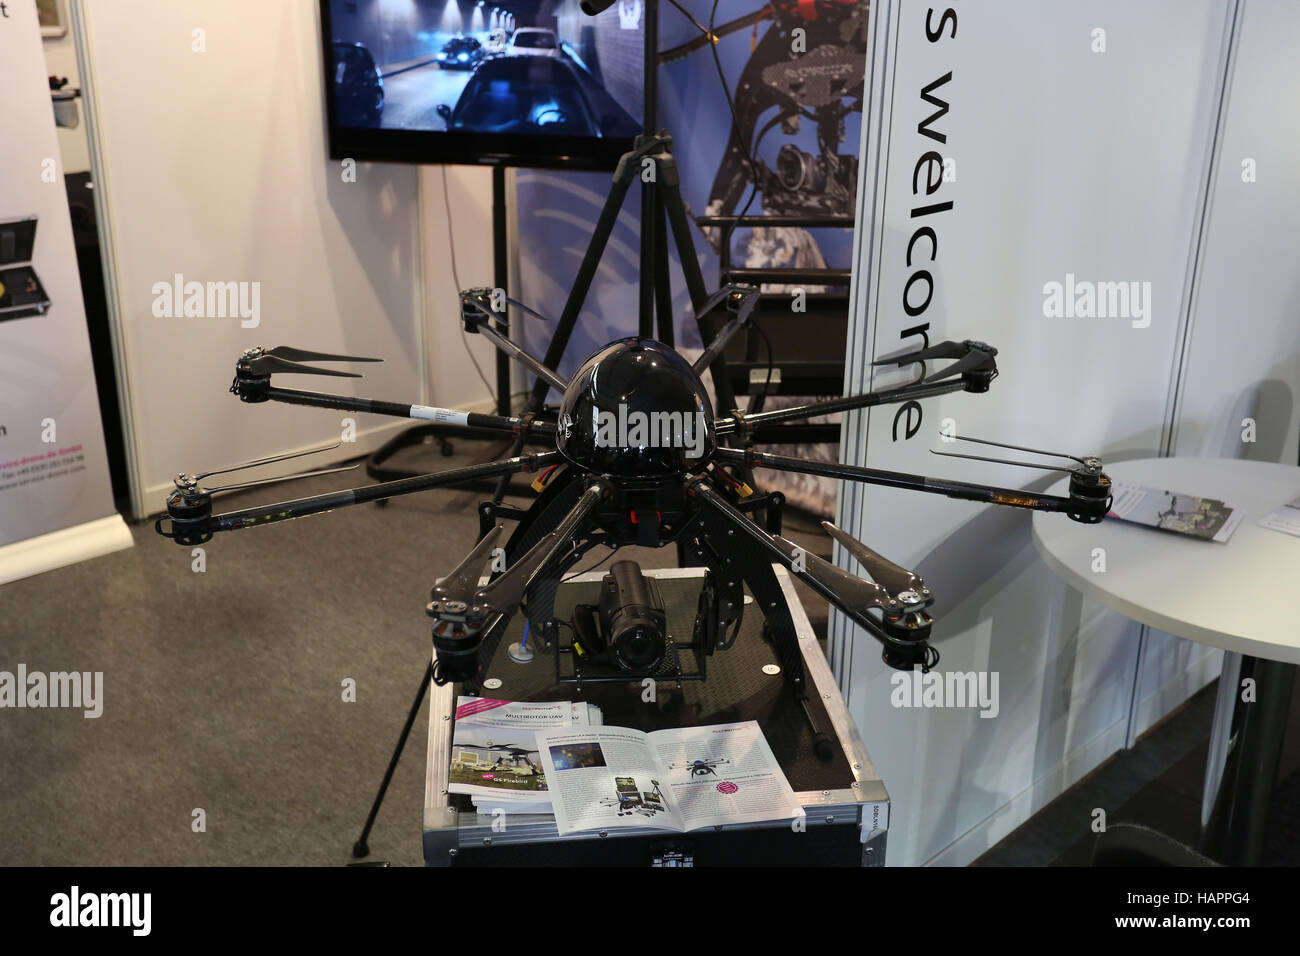 Berlin, Germany, 2nd June, 2016: Multirotor presents an airdrone at Berlin Air Show 2016. - Stock Image